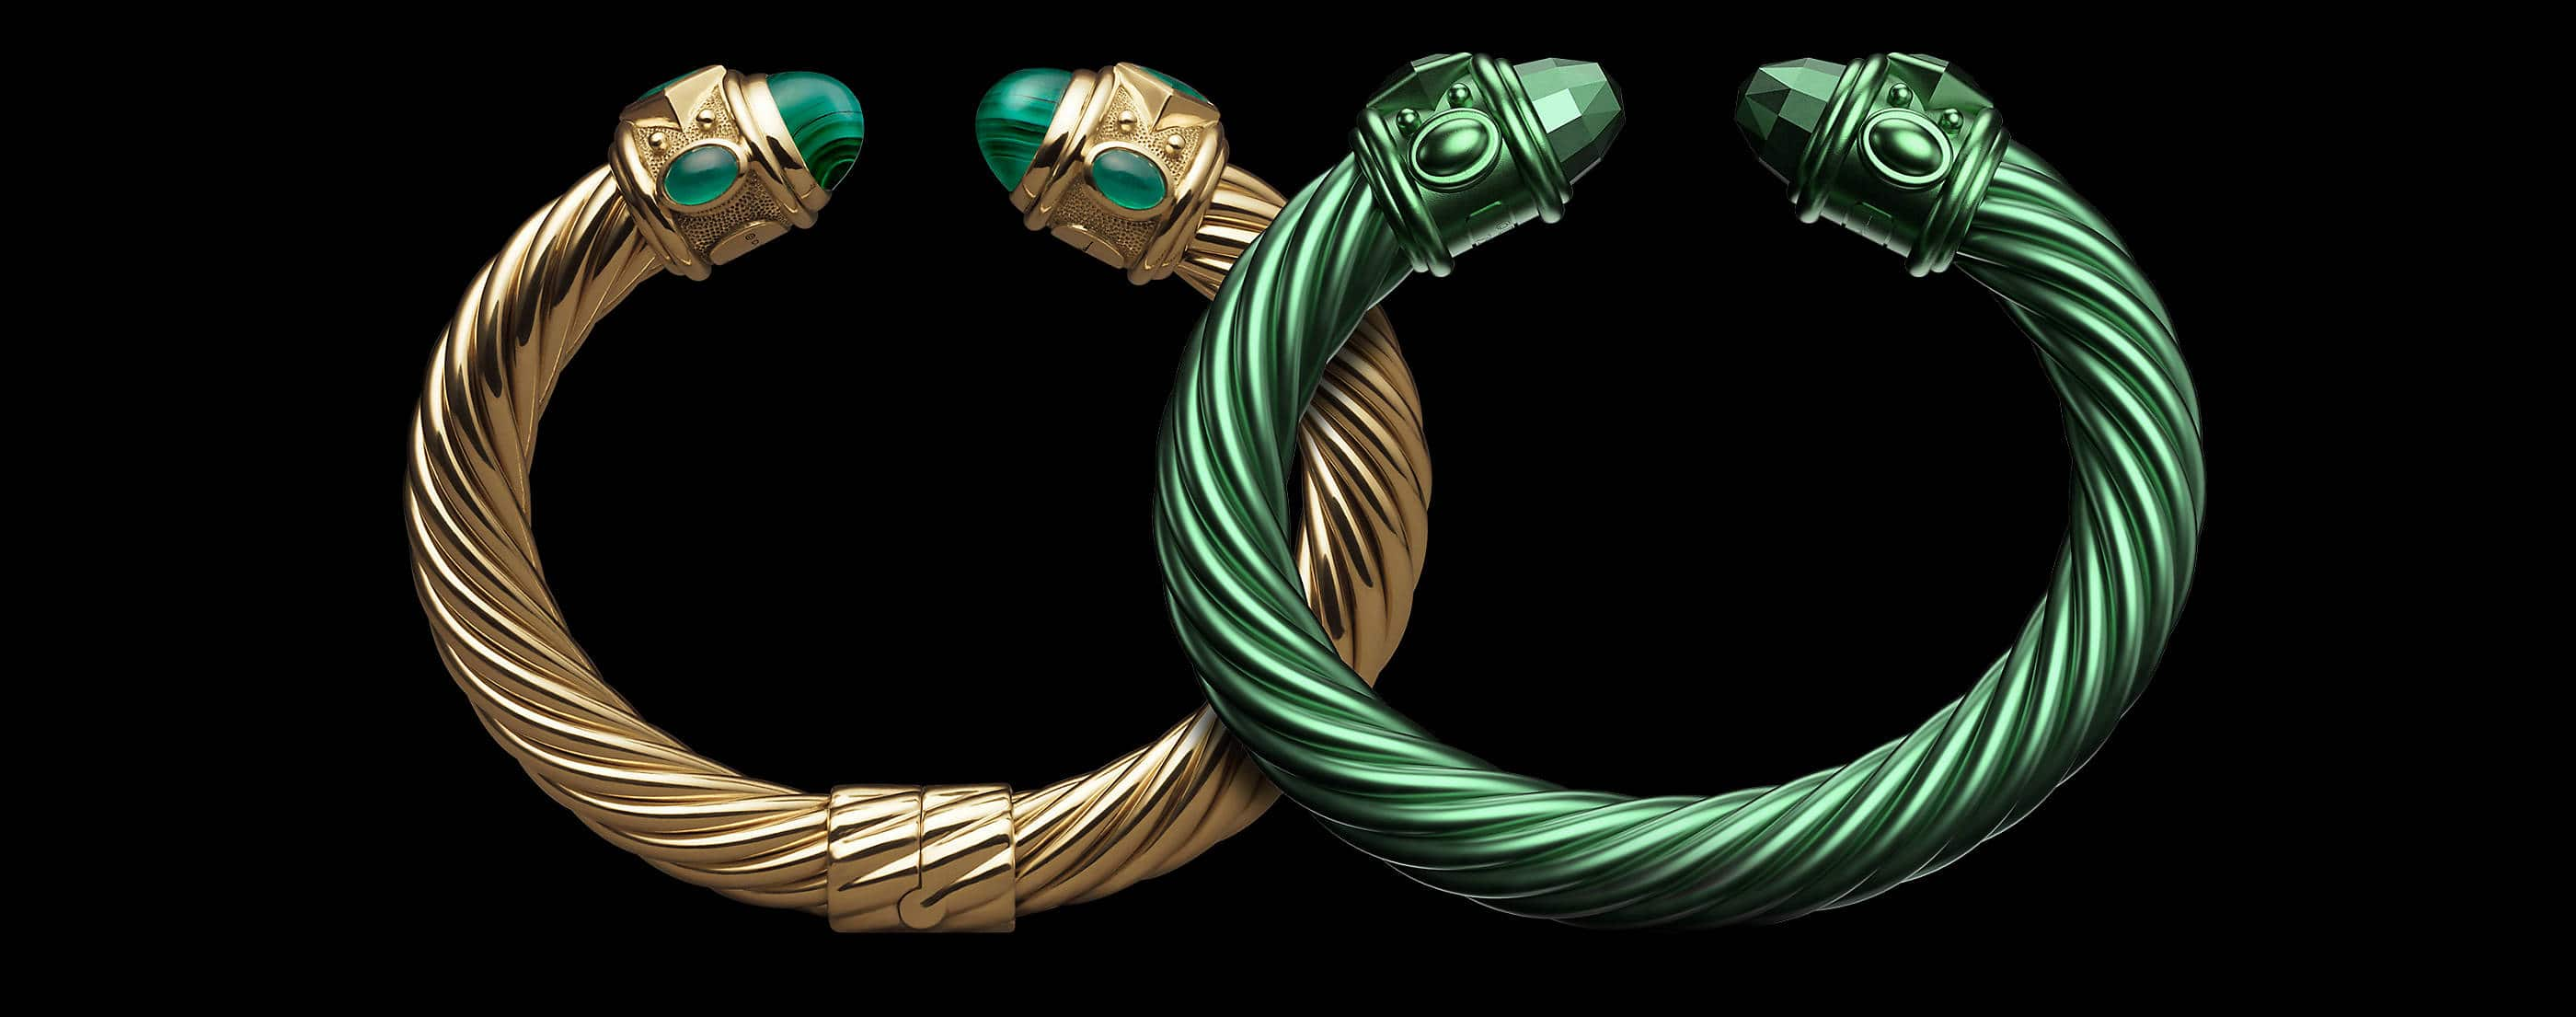 An image of a David Yurman Renaissance bracelet in 18K yellow gold on the left overlapping with a green-hued aluminum version of the same bracelet on the right. The bracelet on the left features emerald cabochons.